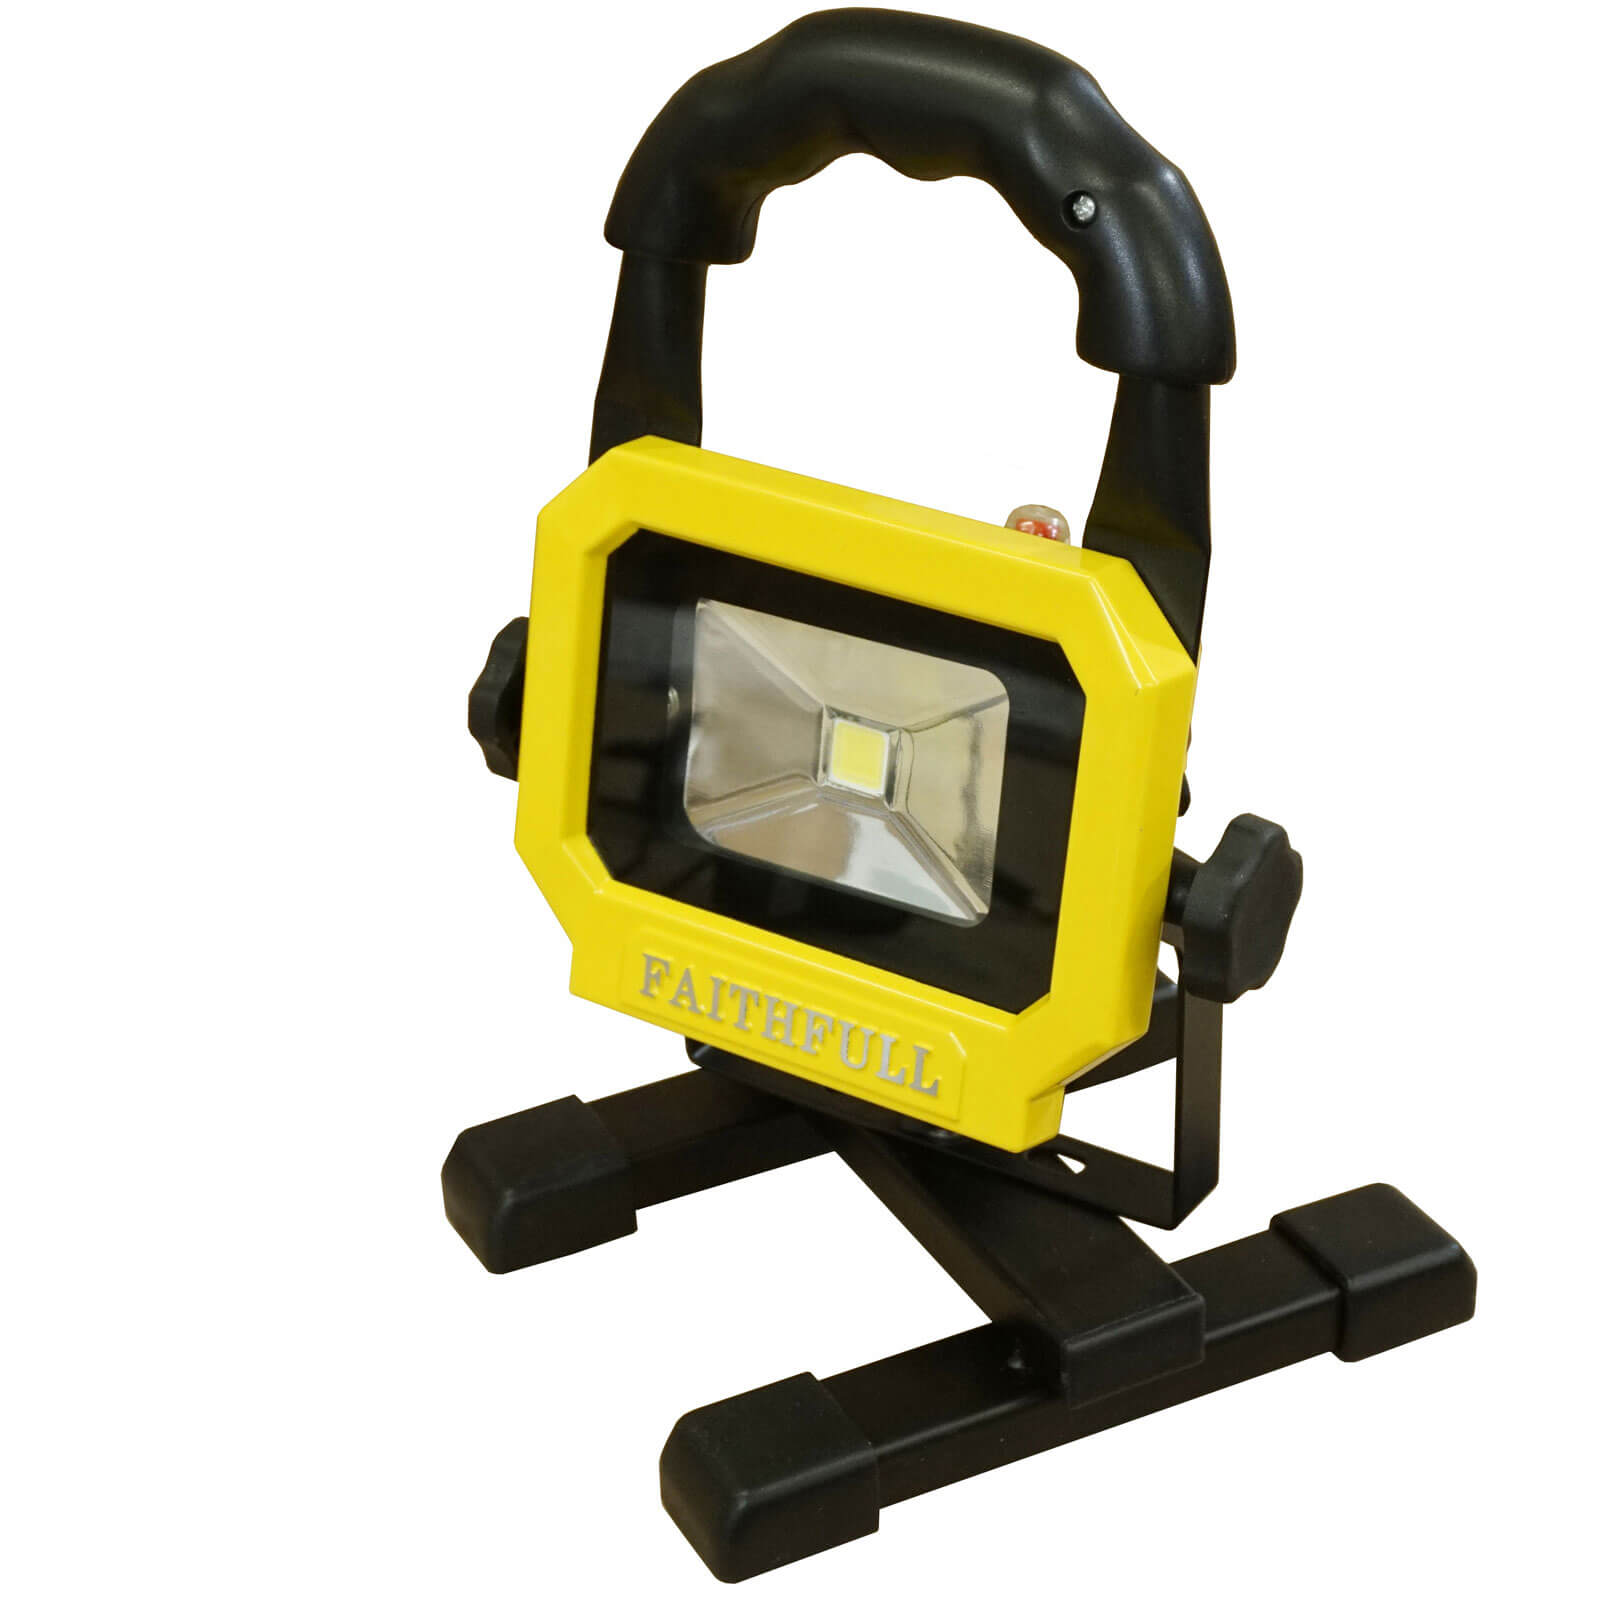 Image of Faithfull Rechargeable COB Work Light with Magnetic Base 10w 650 Lumens